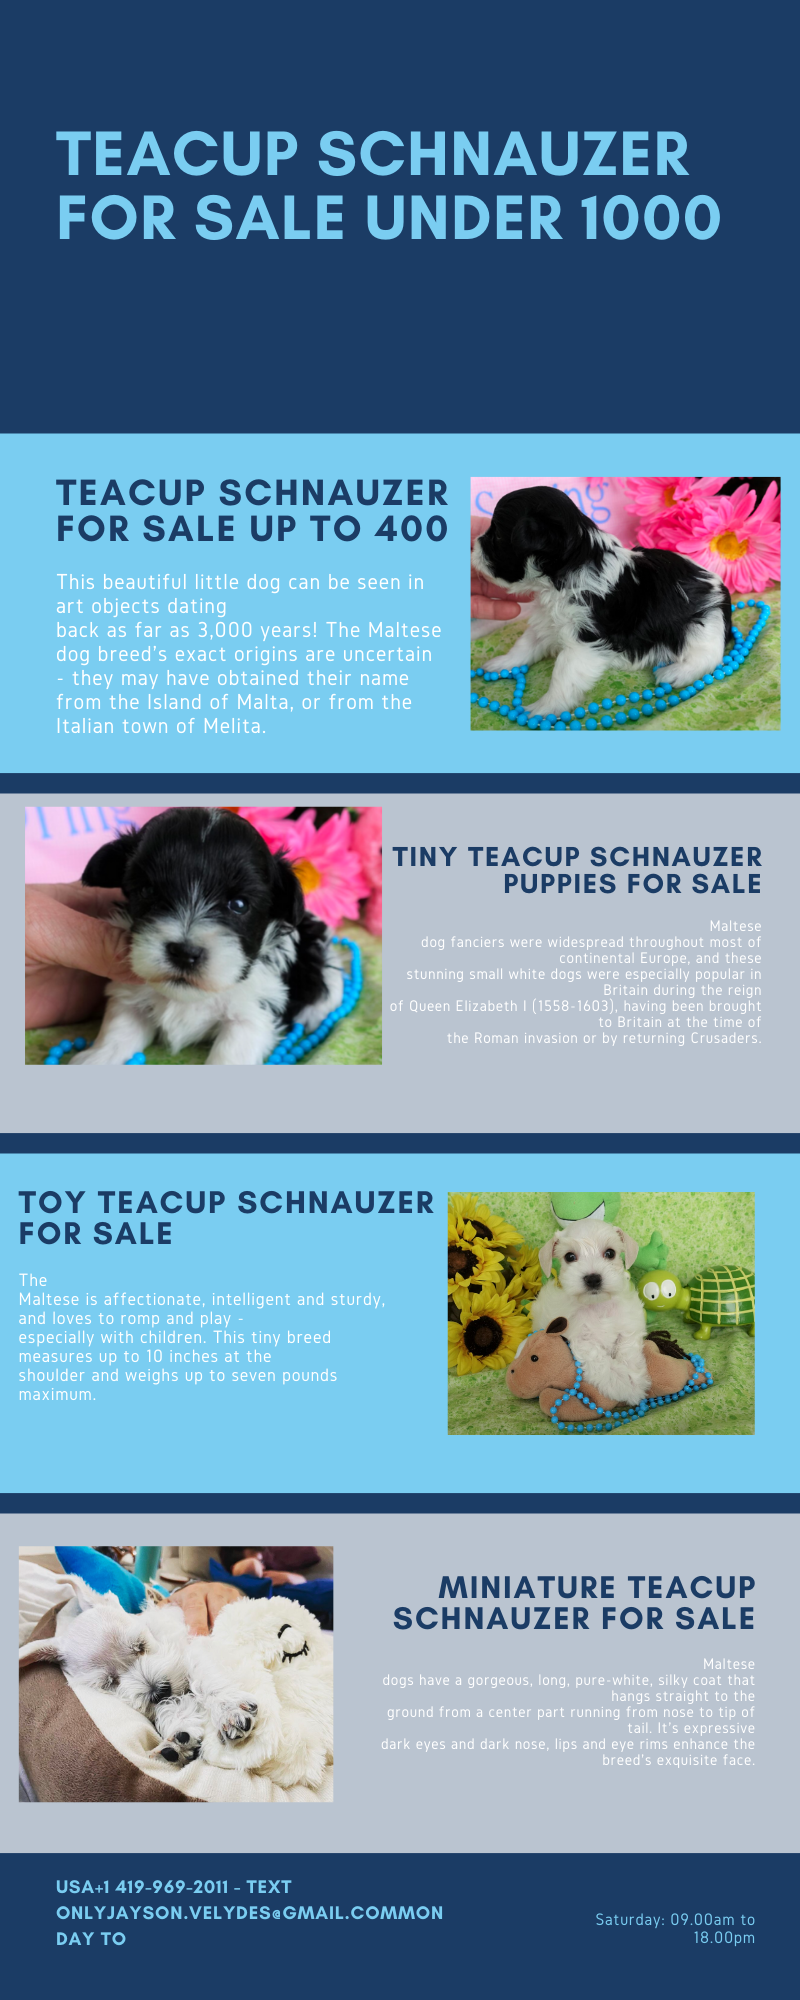 Baby face Schnauzer puppies for sale